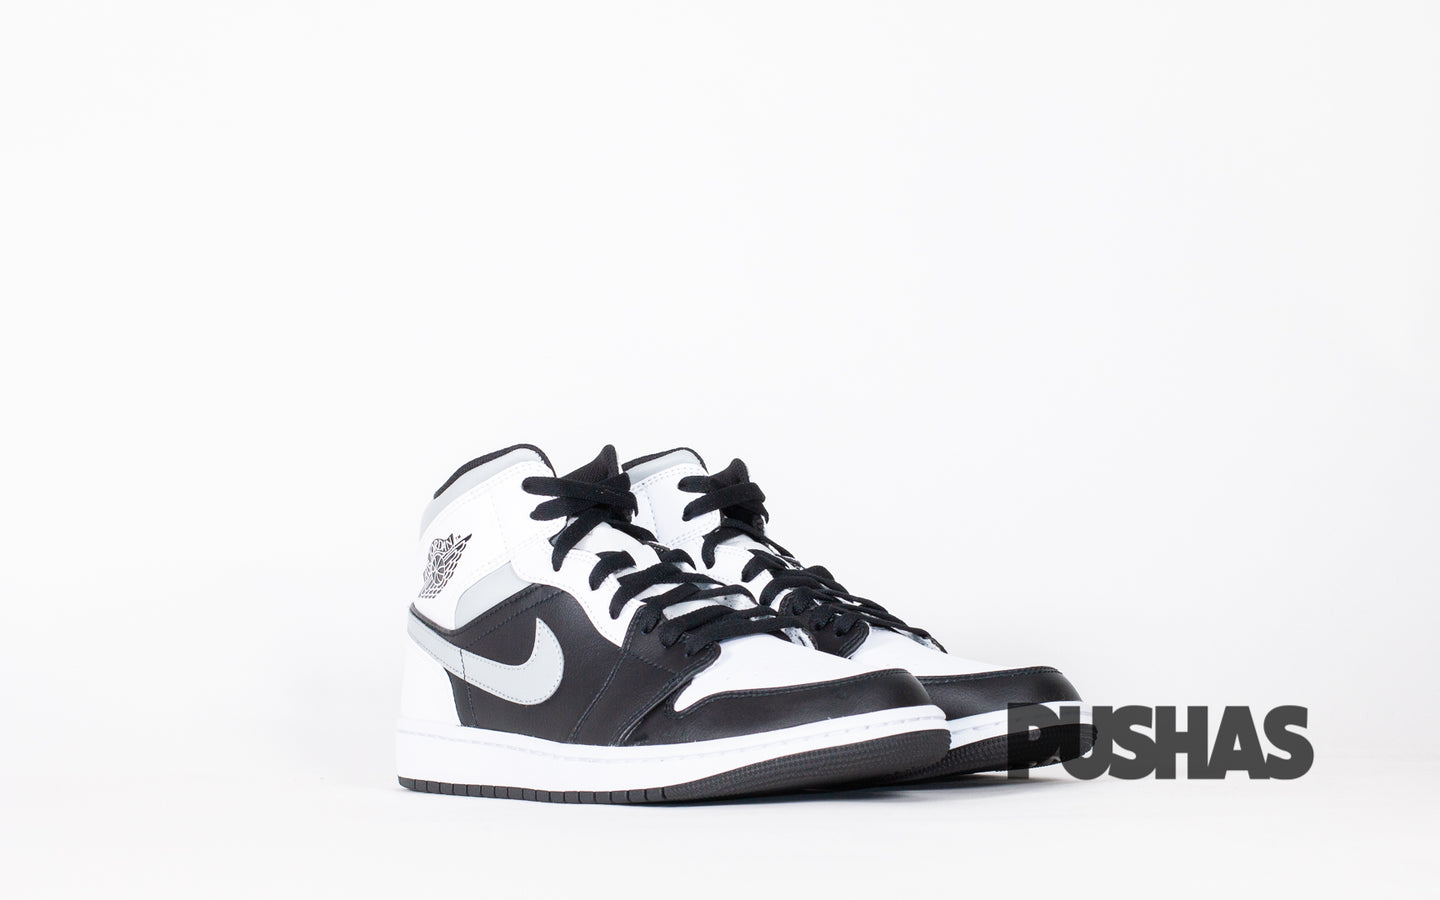 pushas-nike-Air-Jordan-1-Mid-White-Shadow